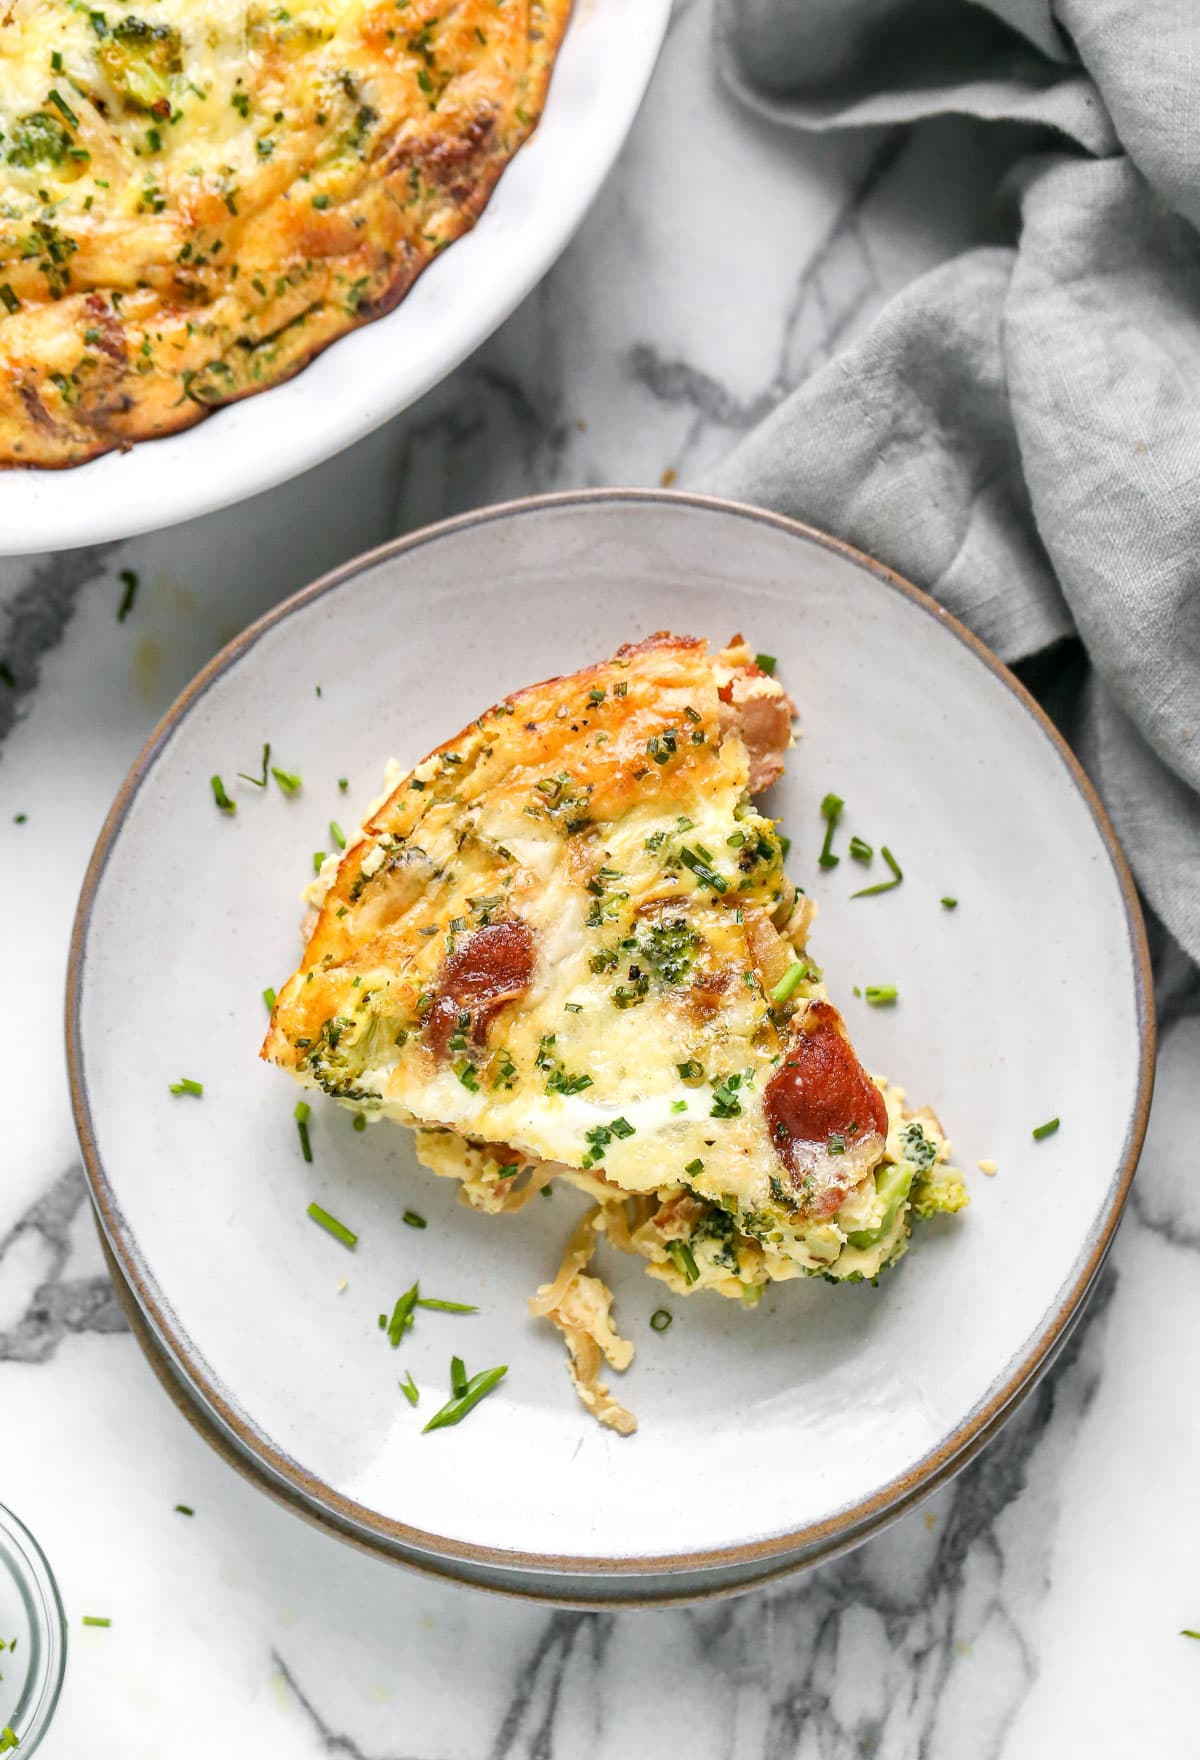 A piece of crustless quiche on a plate